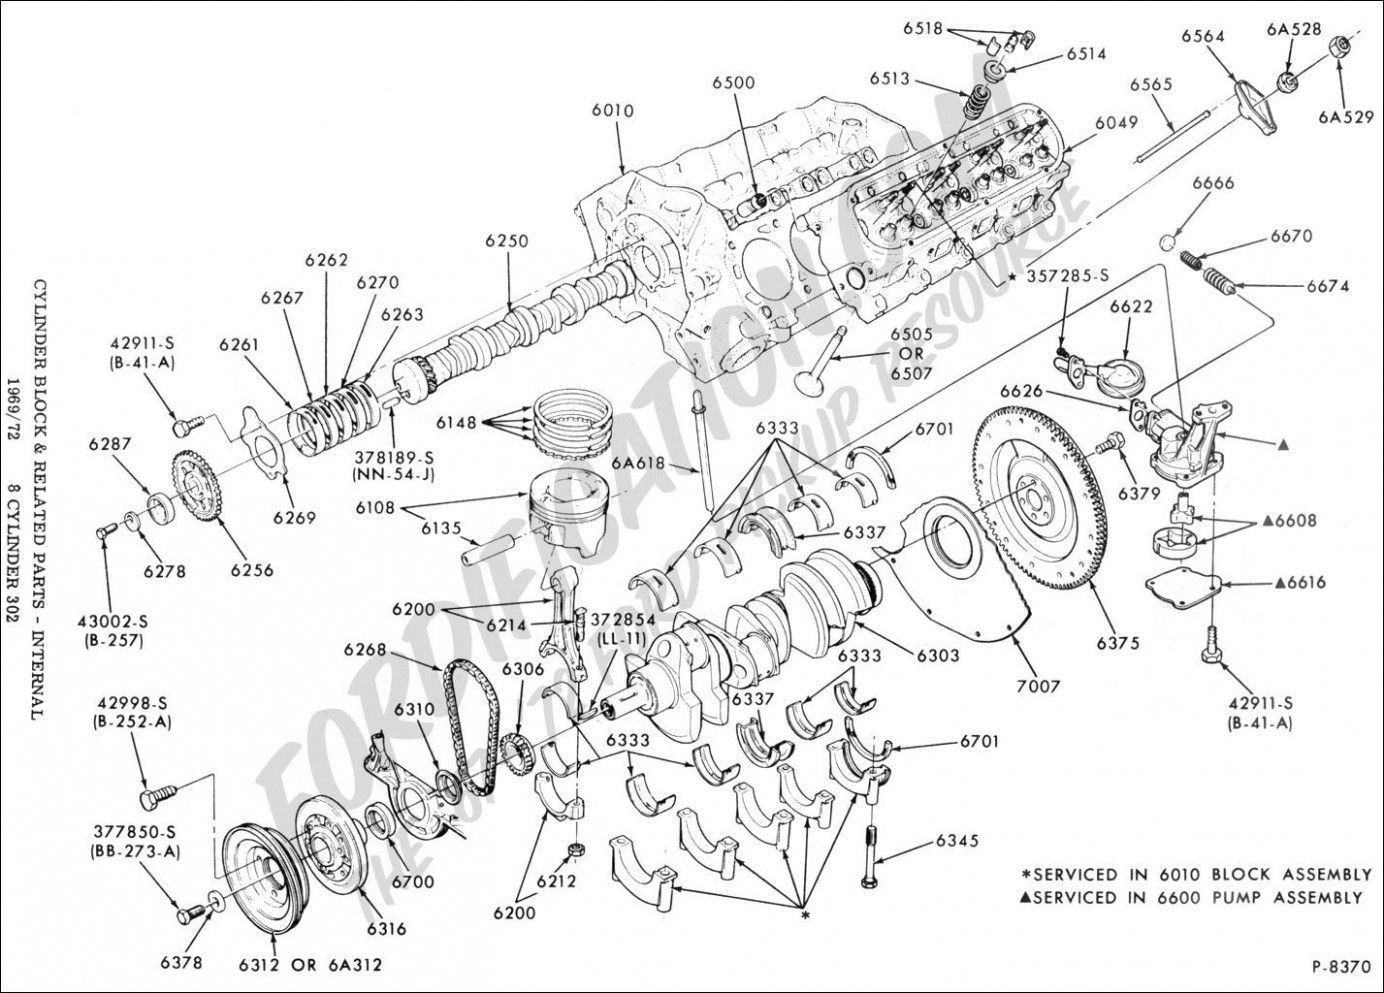 Engine Diagram And Parts List Engine Diagram And Parts